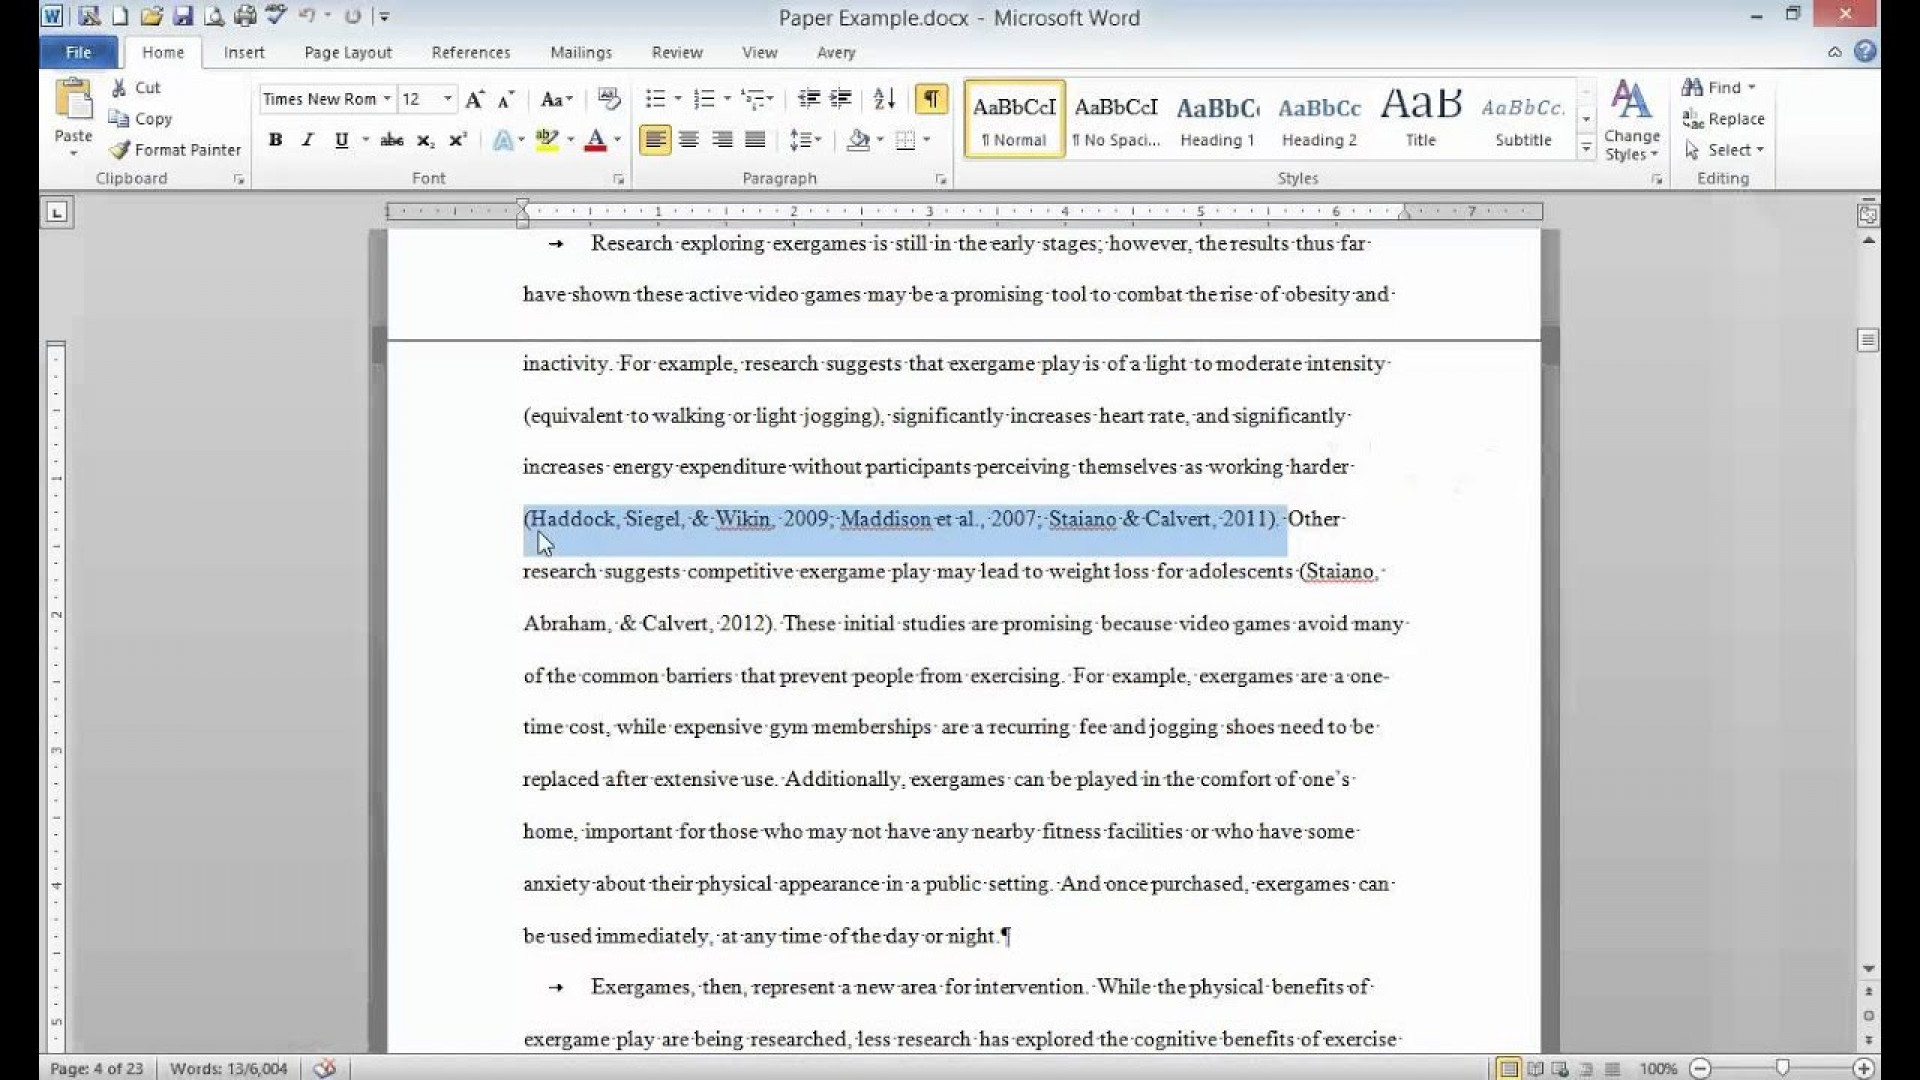 016 Citing Sources In Research Paper Apa Astounding Paragraph 1920